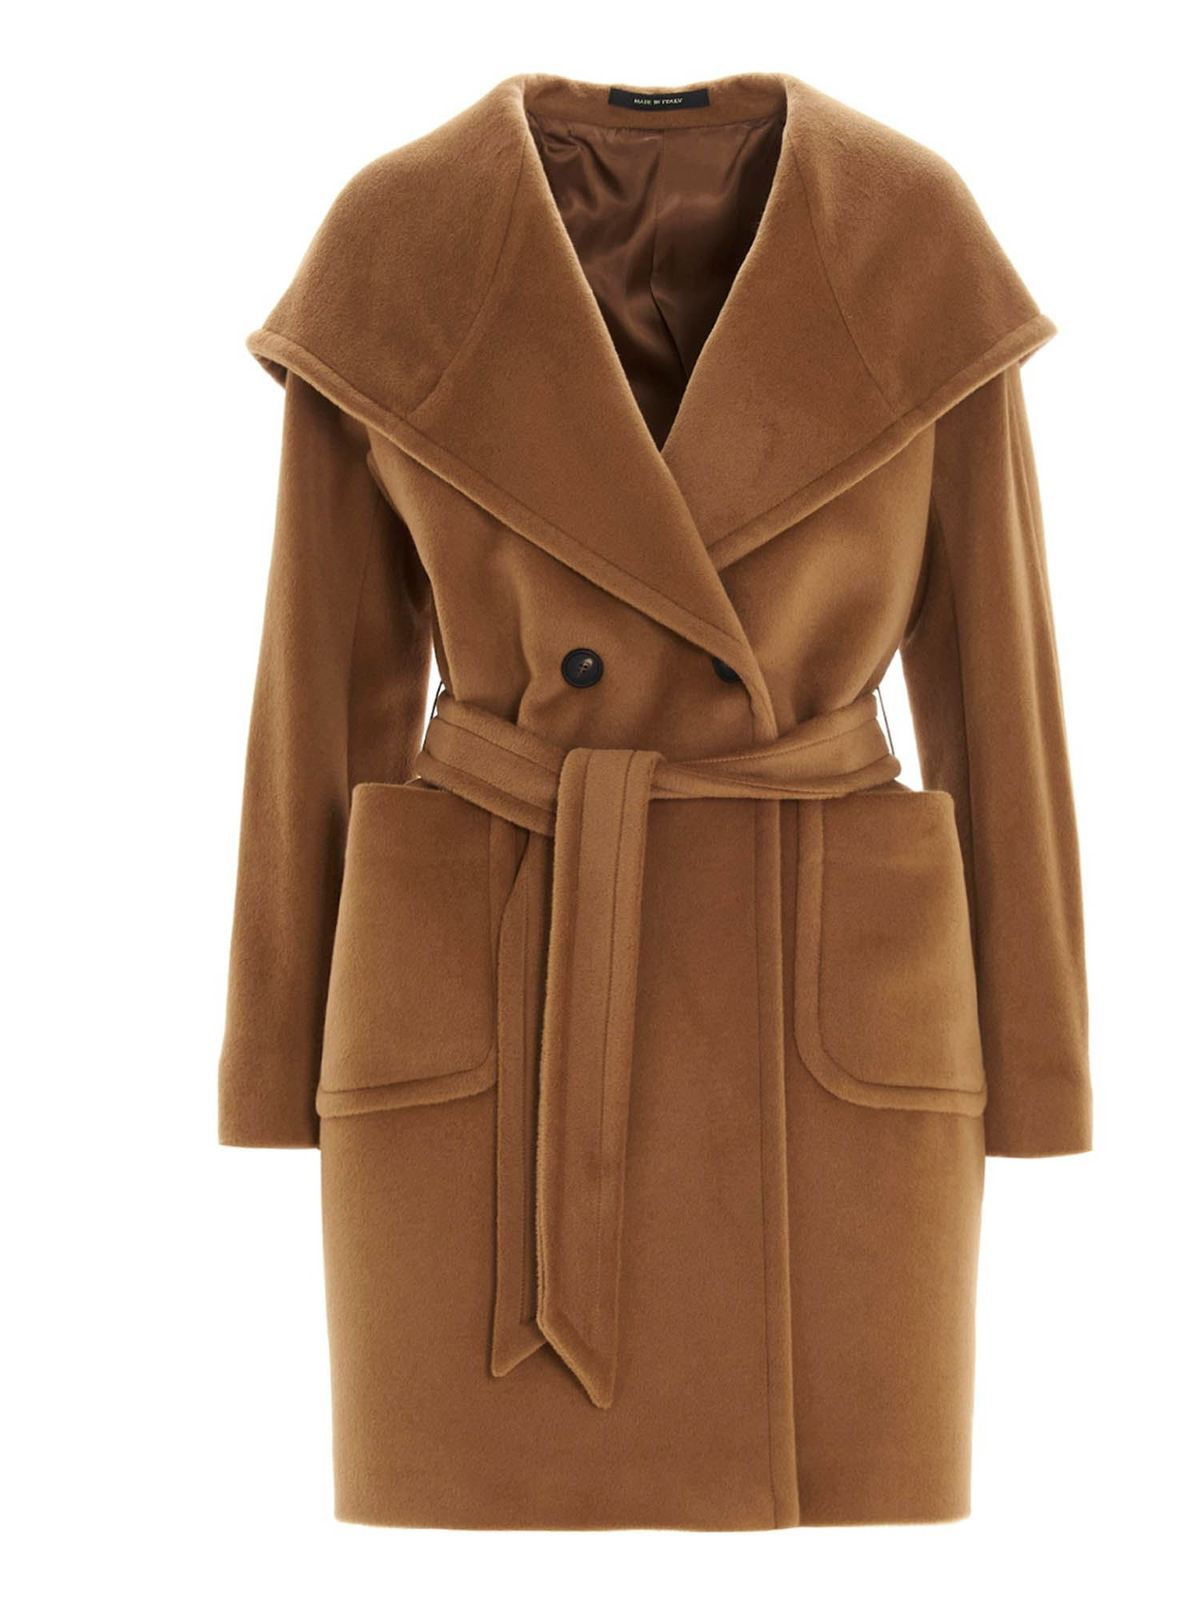 Tagliatore CHELSEY COAT IN BROWN